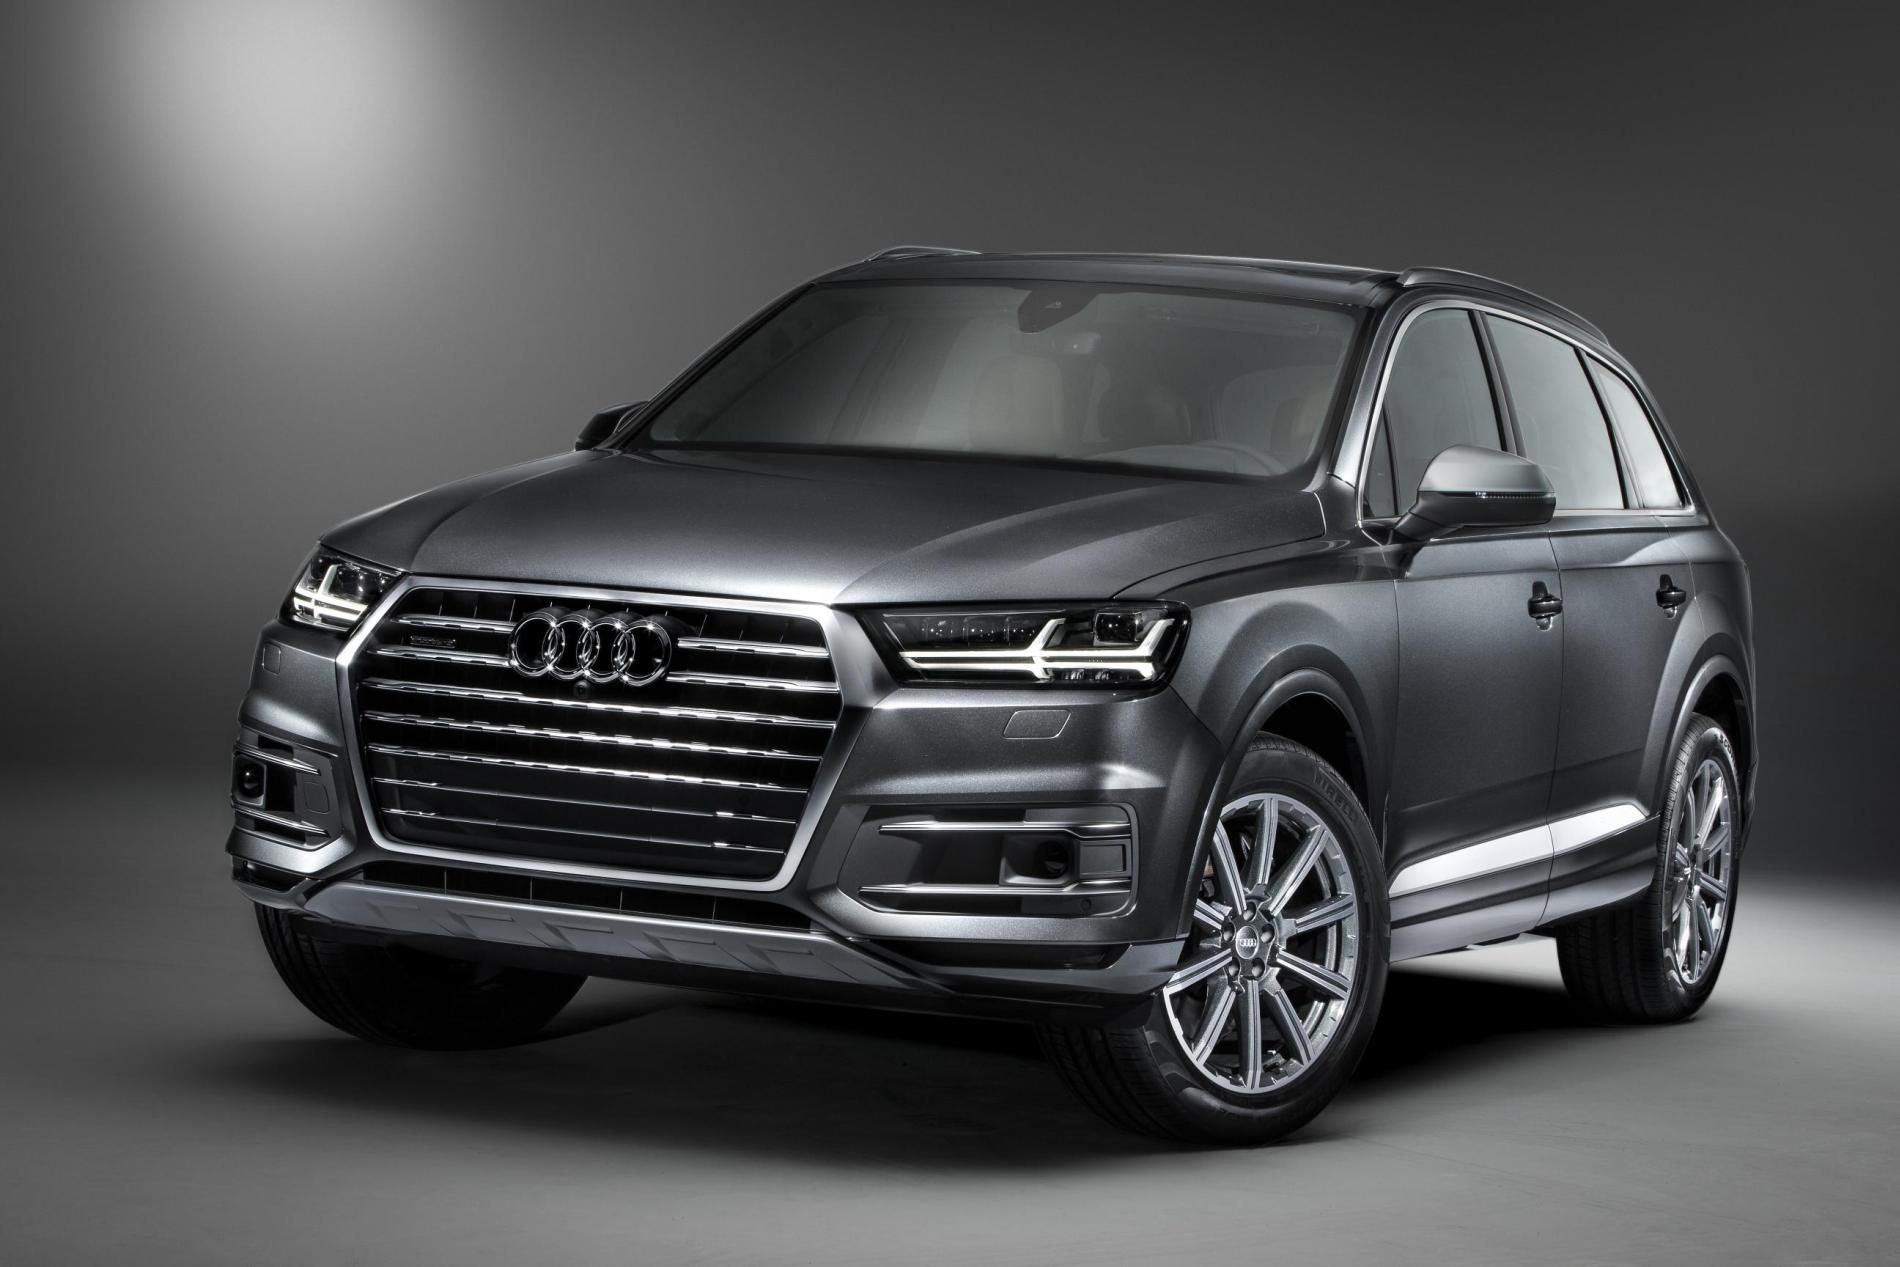 Audi Sq7 Usa Release >> Usa 2017 Audi Q7 Prices Announced On Sale By Early 2016 Audi Q7